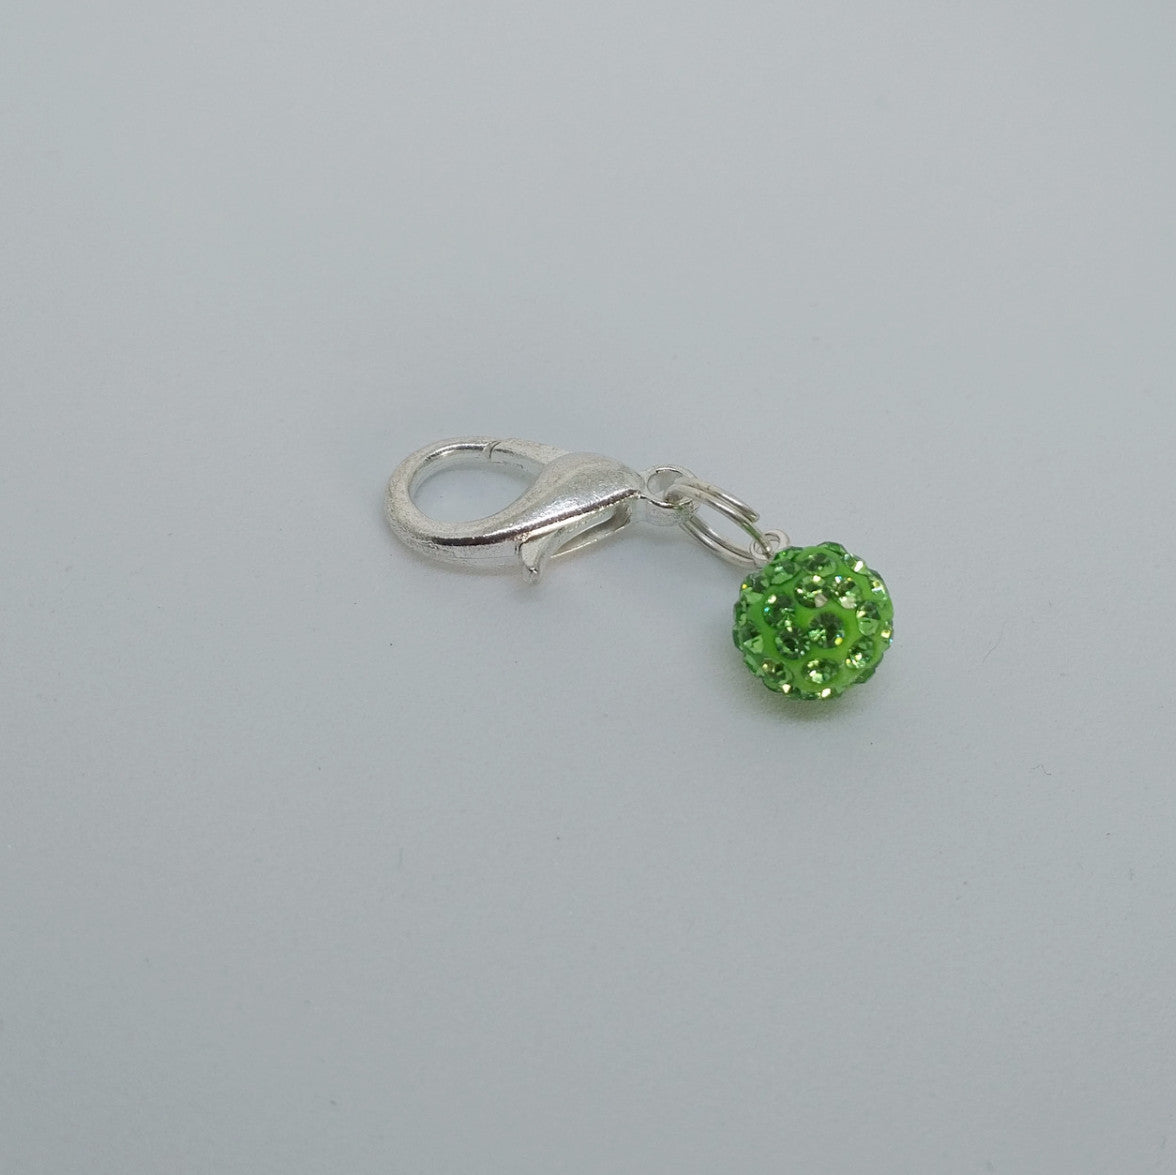 Lime Green Charm and Earrings - Pony Express Girls